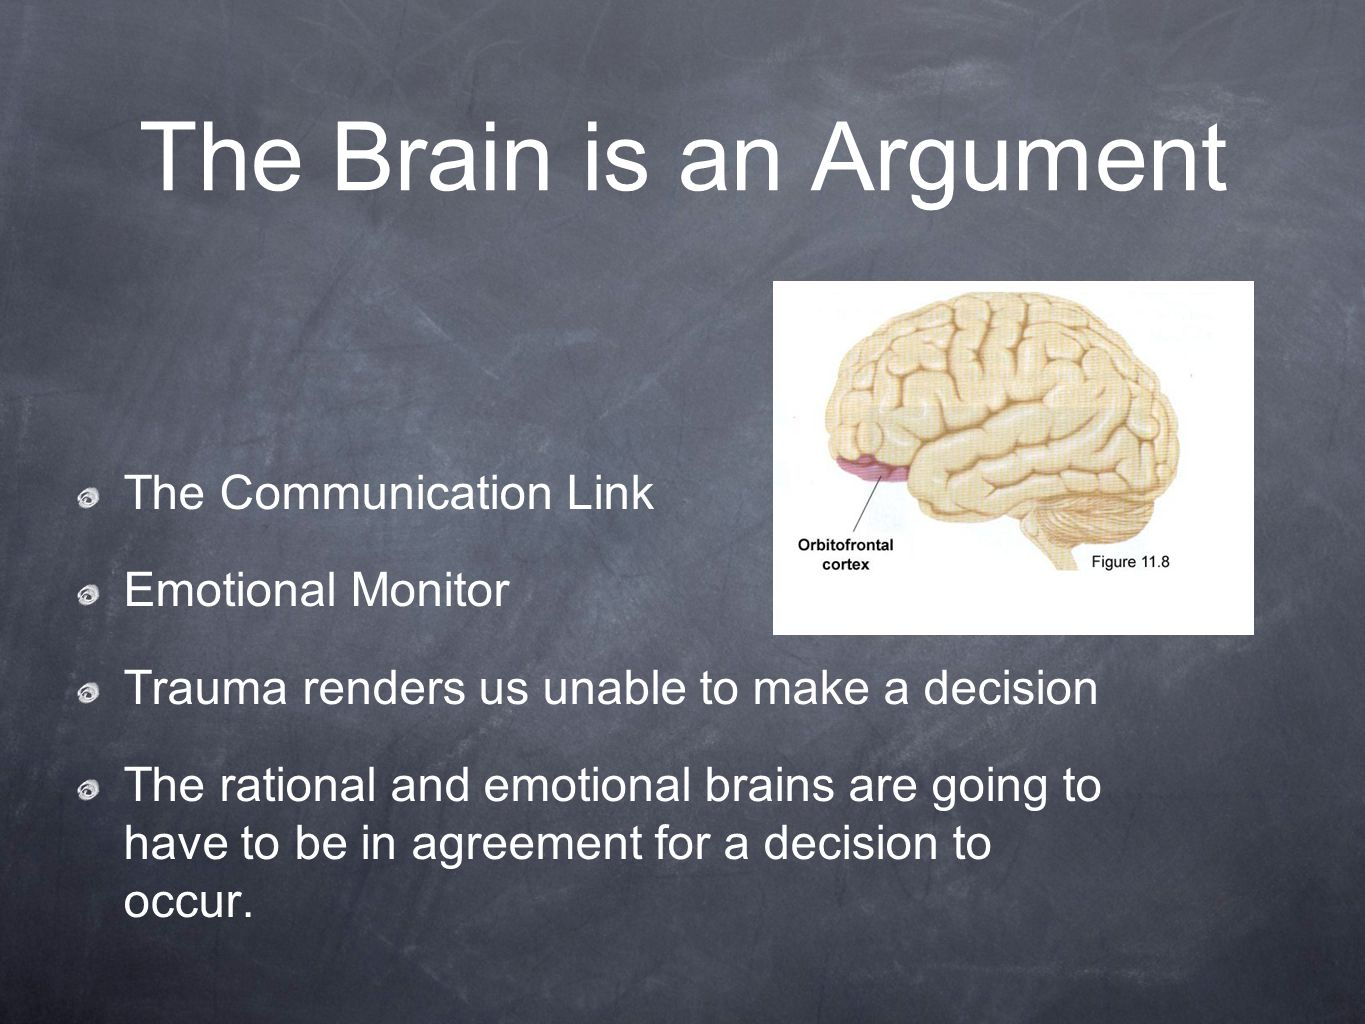 The Brain is an Argument The Communication Link Emotional Monitor Trauma renders us unable to make a decision The rational and emotional brains are going to have to be in agreement for a decision to occur.